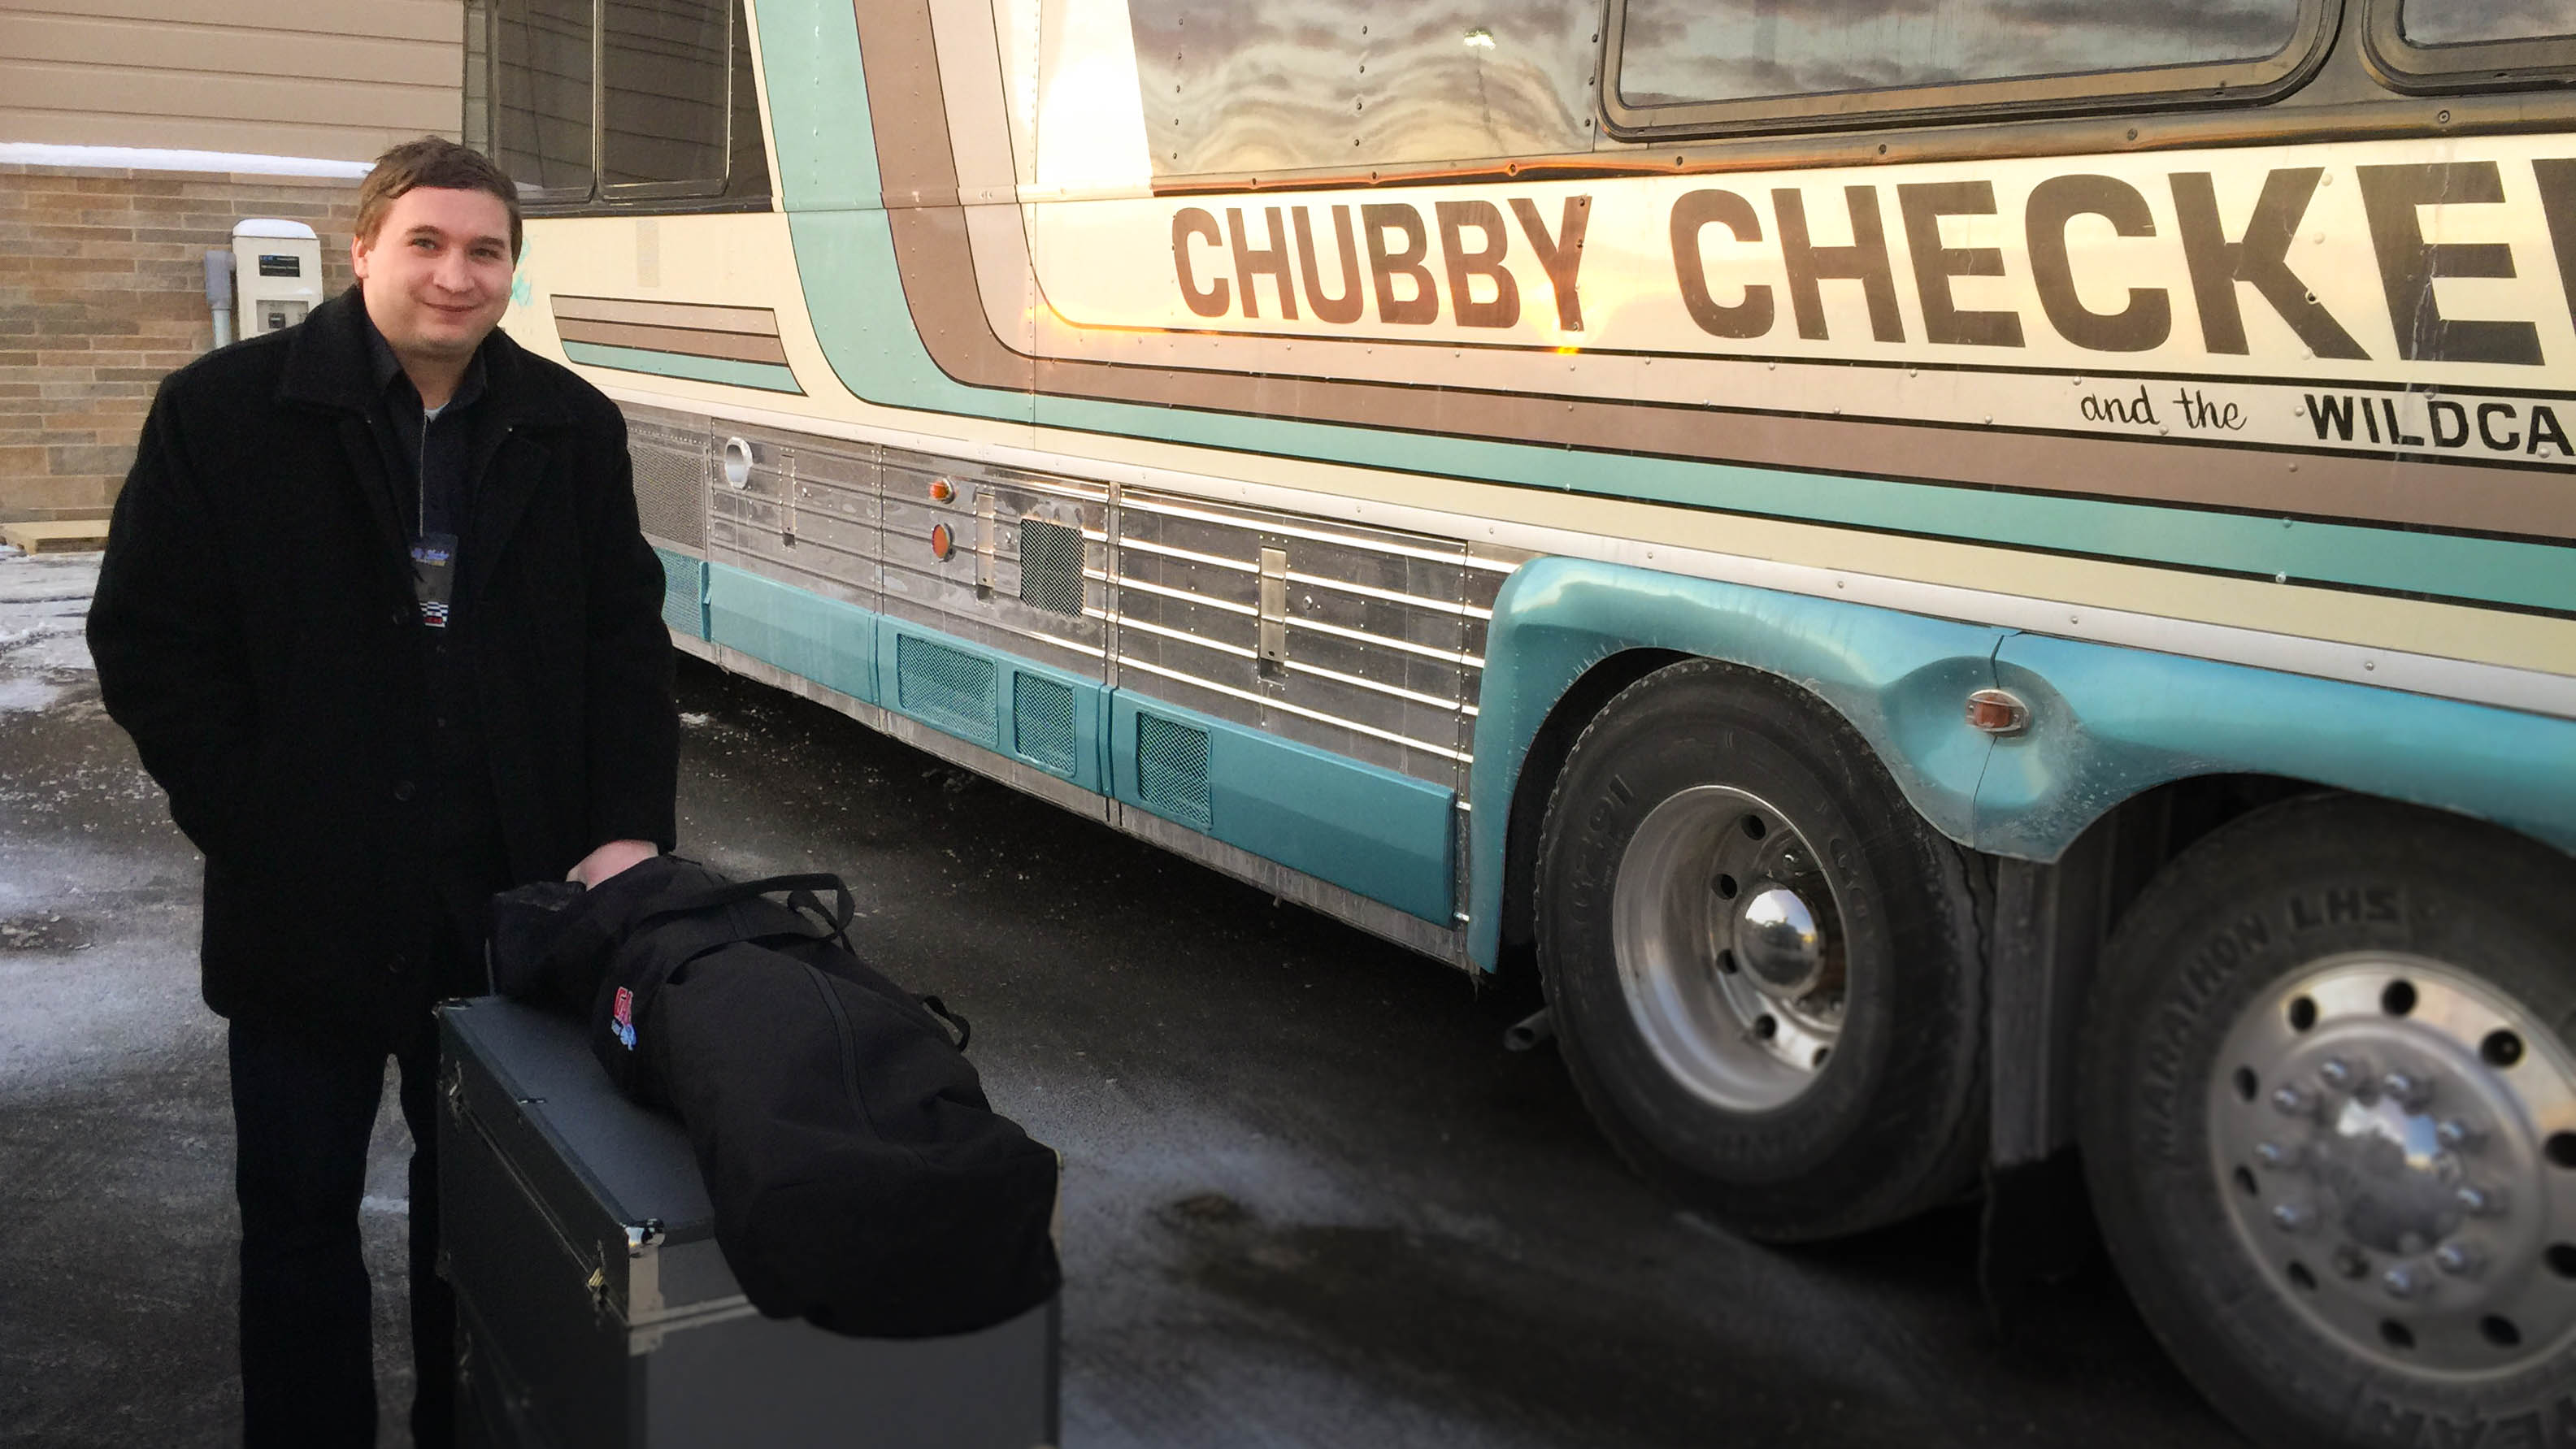 Chubby checkers bus